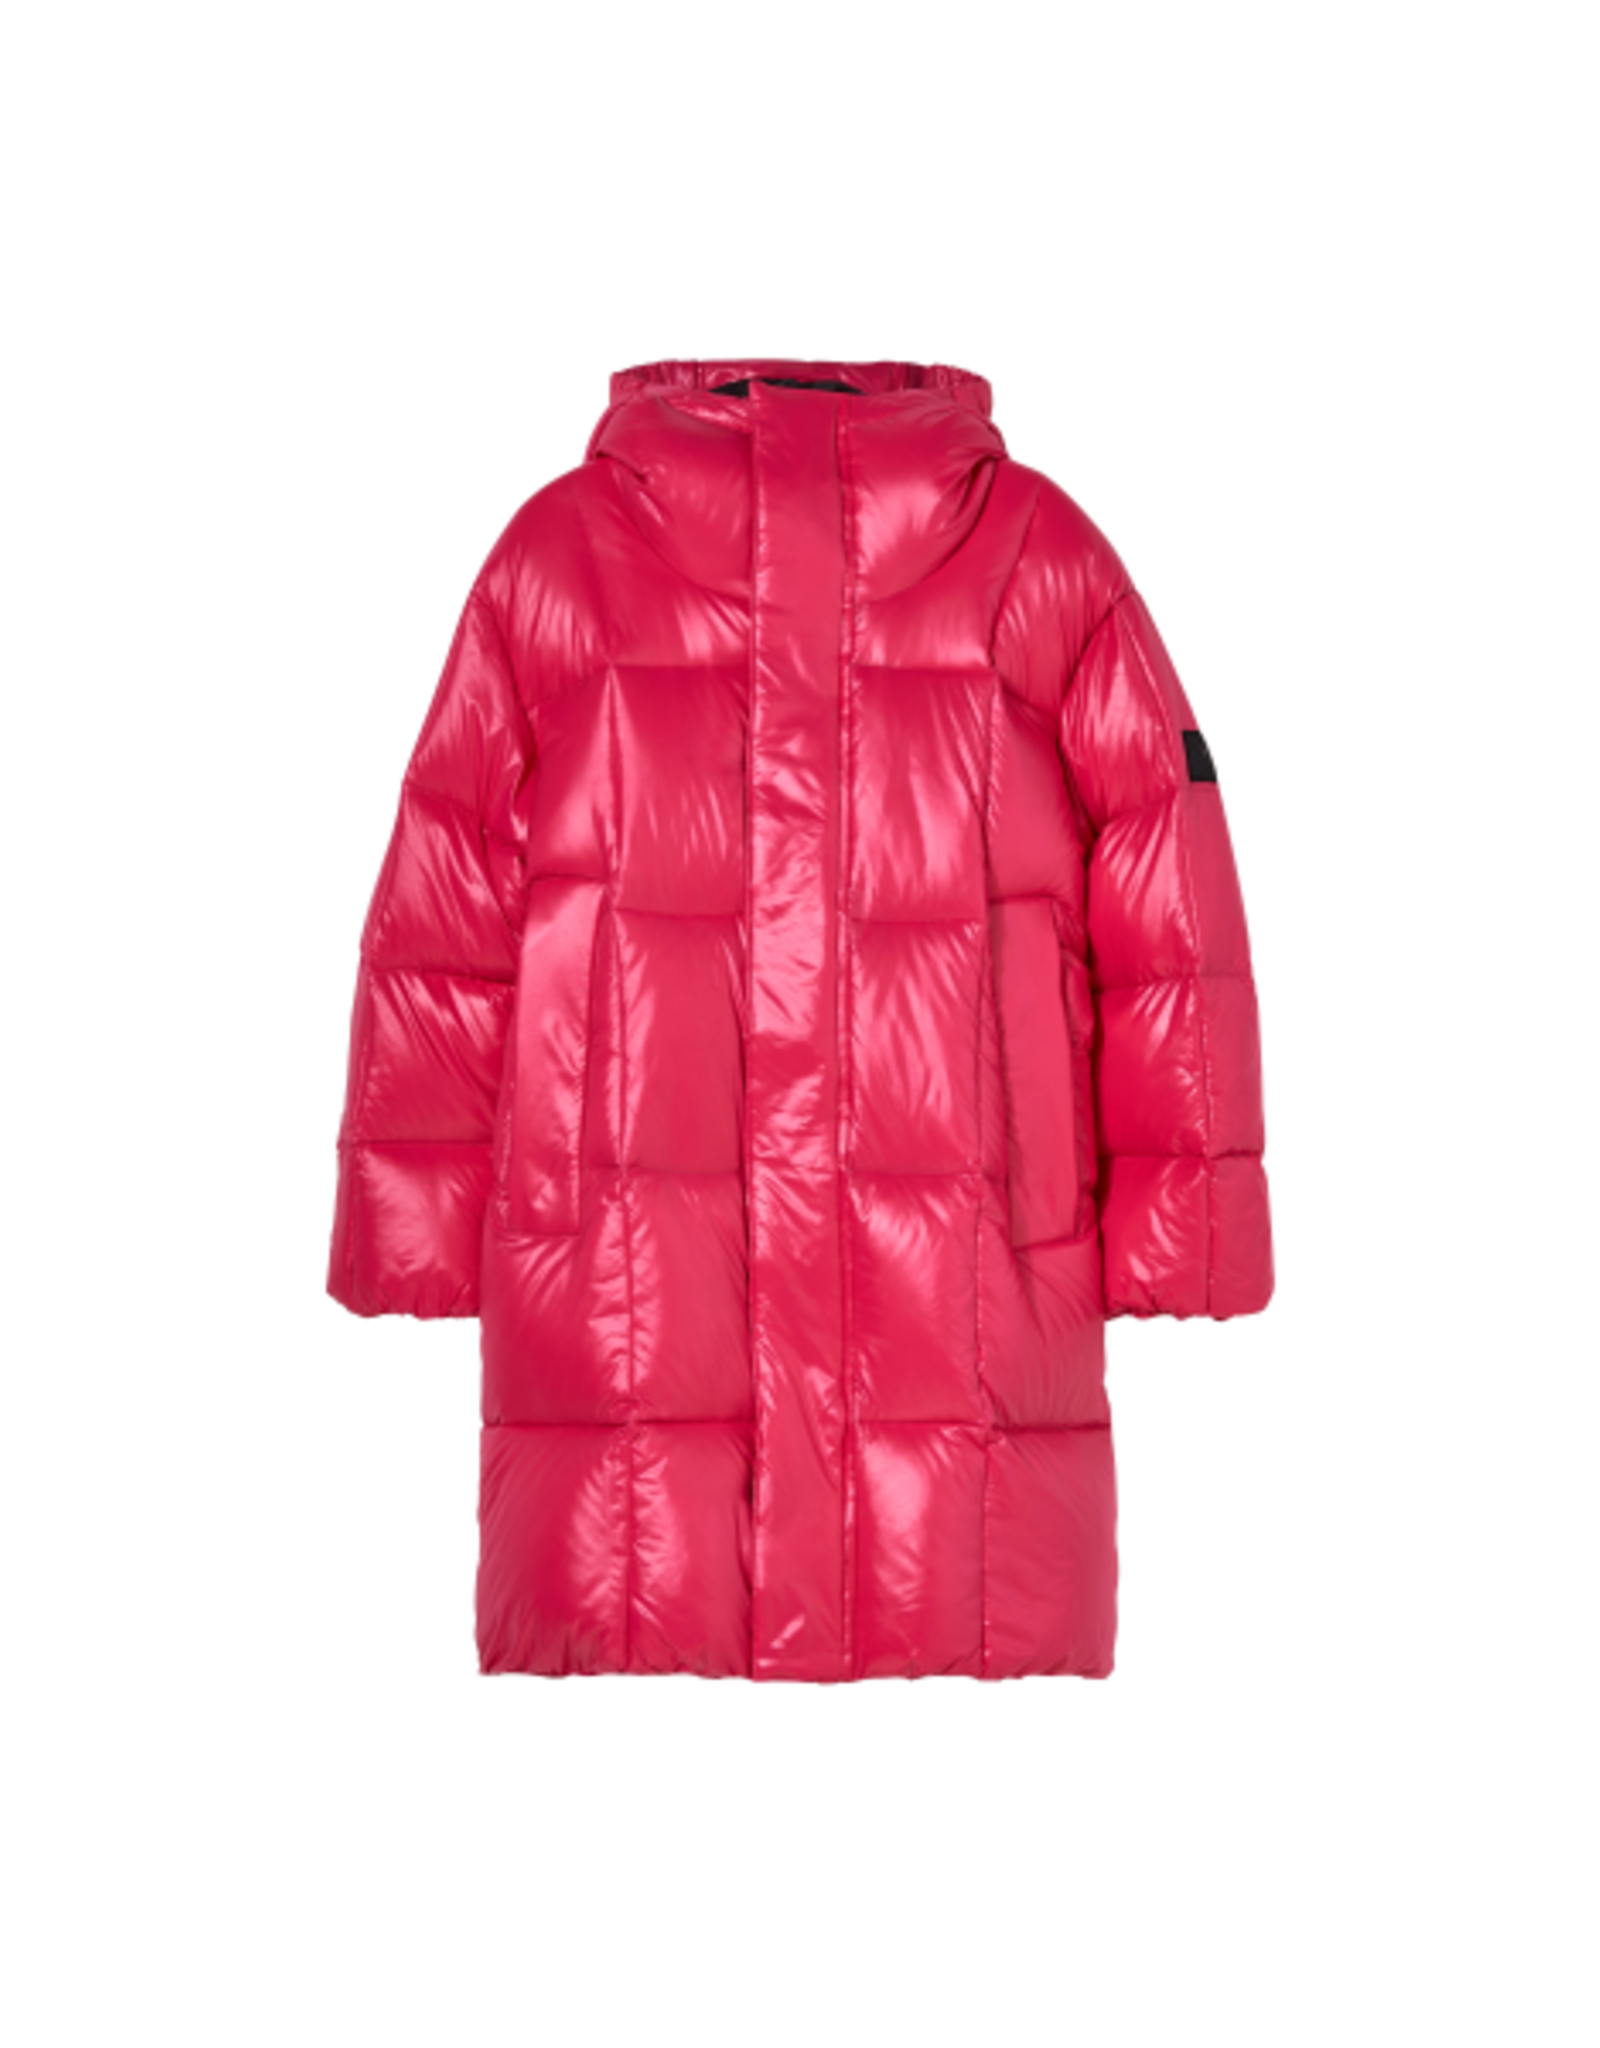 Finger in the Nose Finger in the Nose FW21 Snowlong pink jacket